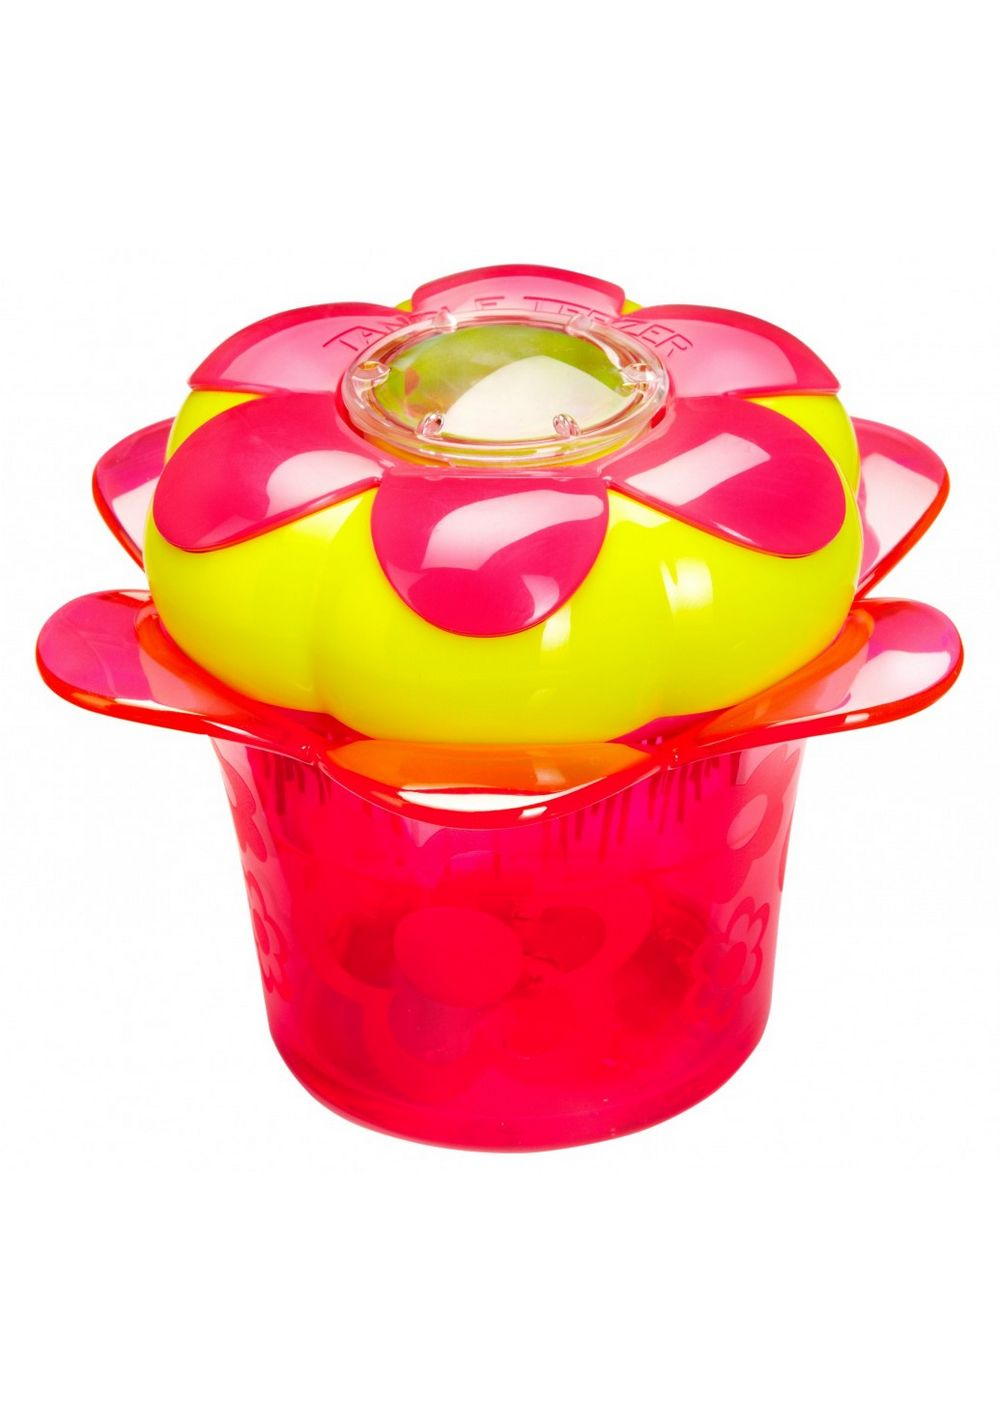 Расческа Tangle Teezer Magic Flowerpot Princess Pink - LEROSE.RU. Фото N7